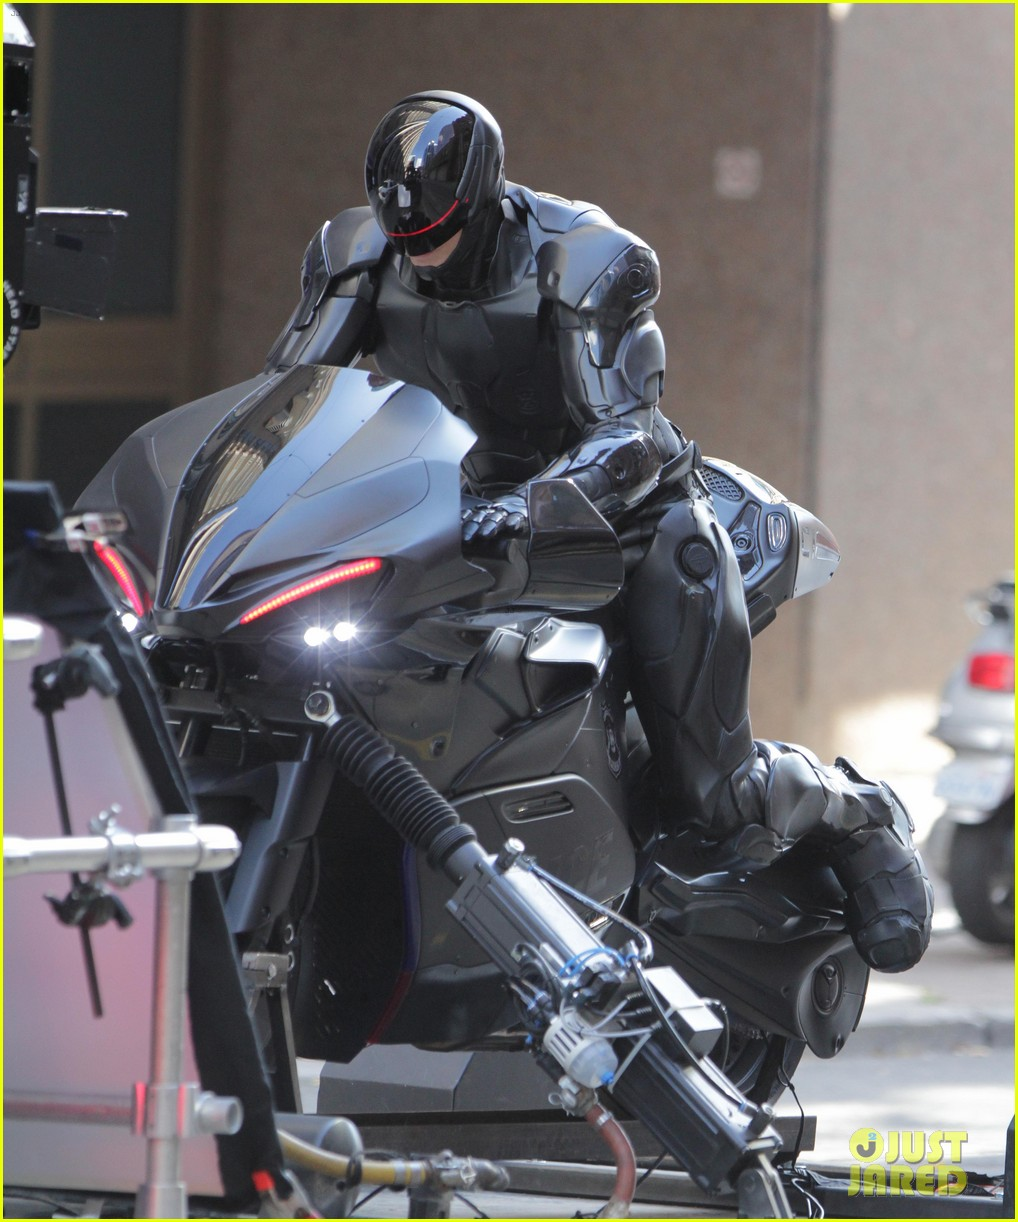 Joel Kinnaman Robocop Motorcycle Scenes Photo 2742792 Joel